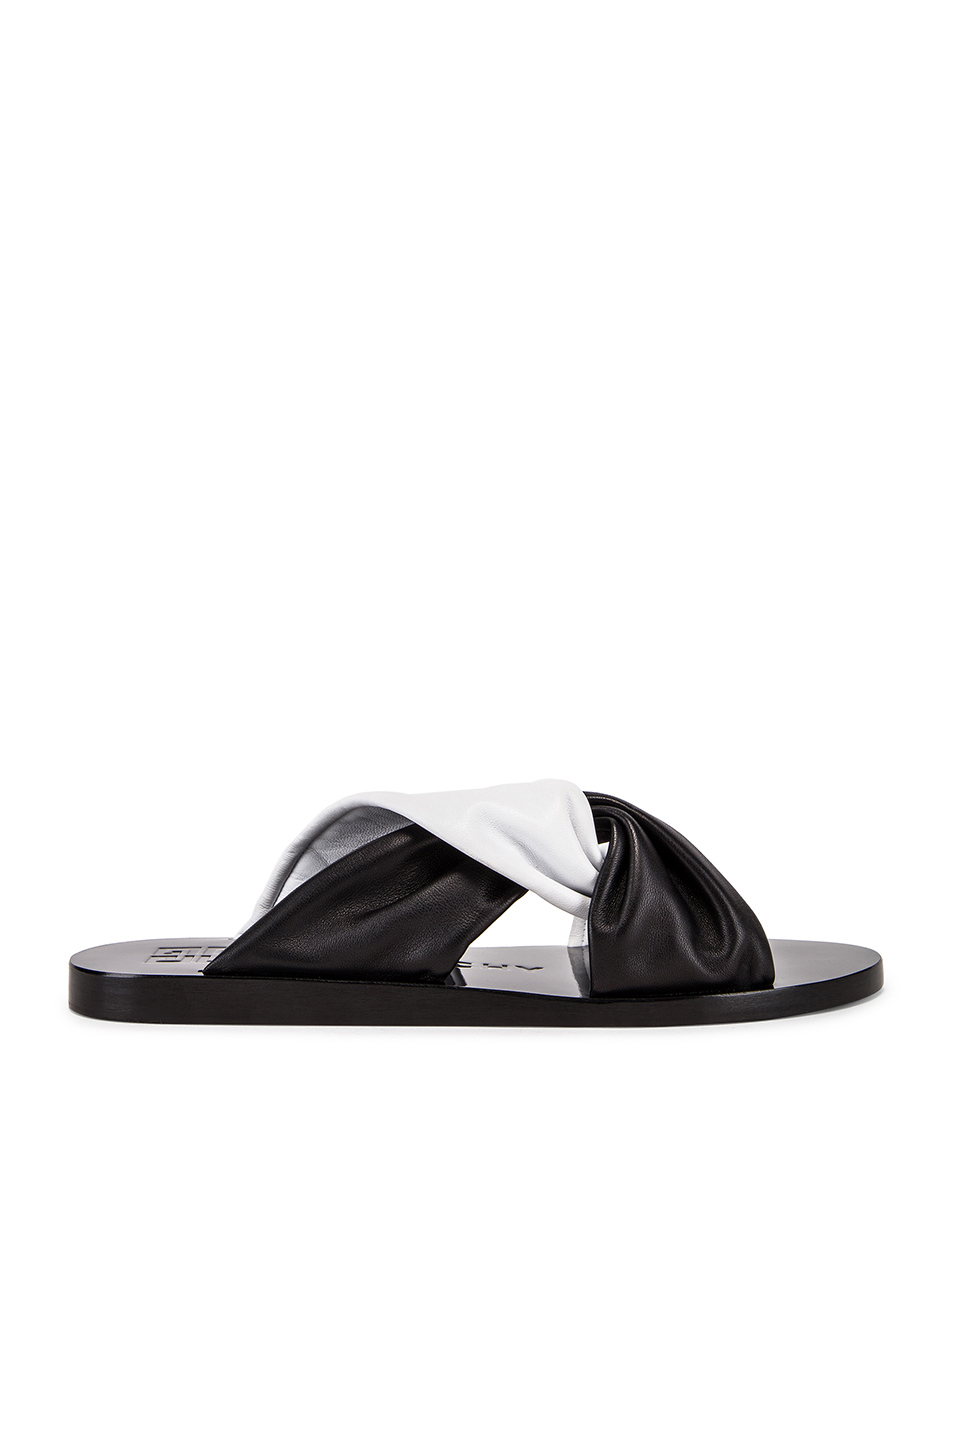 Flat At Original IndonesiaBobobobo Buy Givenchy Tie Sandals qzVpUMLSG